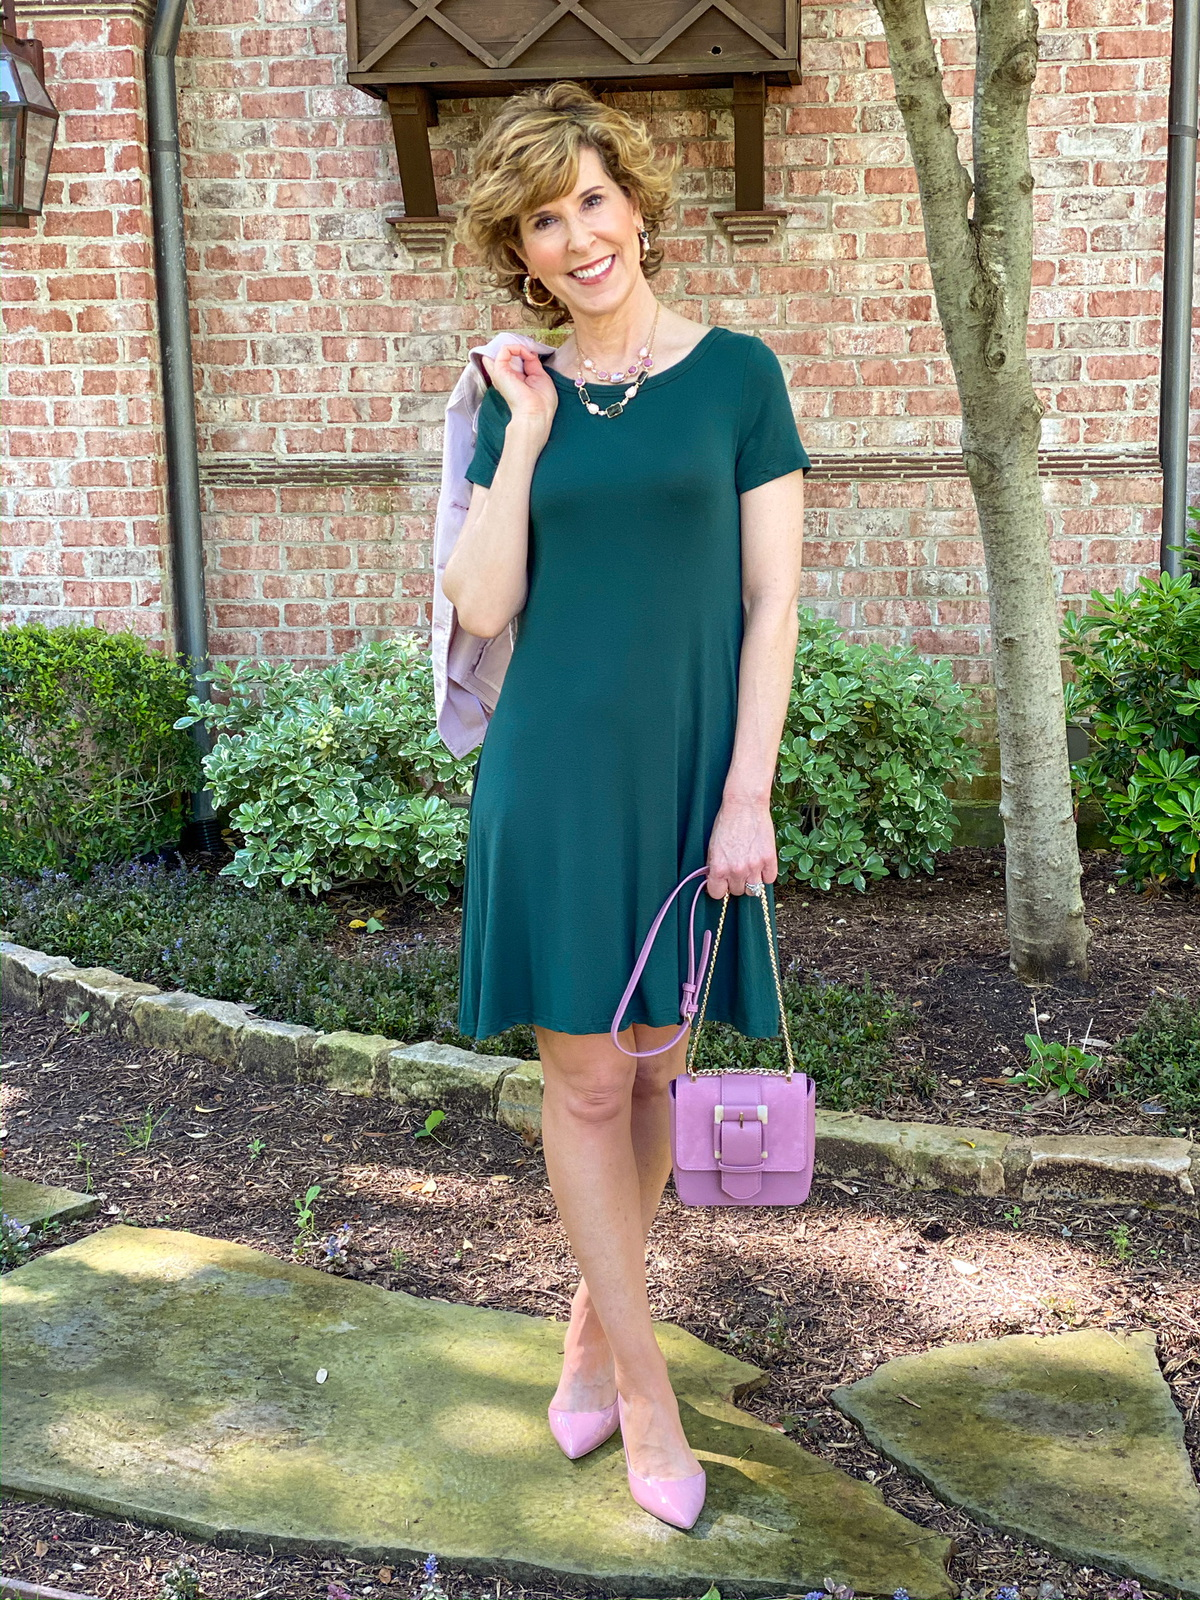 woman in green dress with pink accessories posing in her front yard